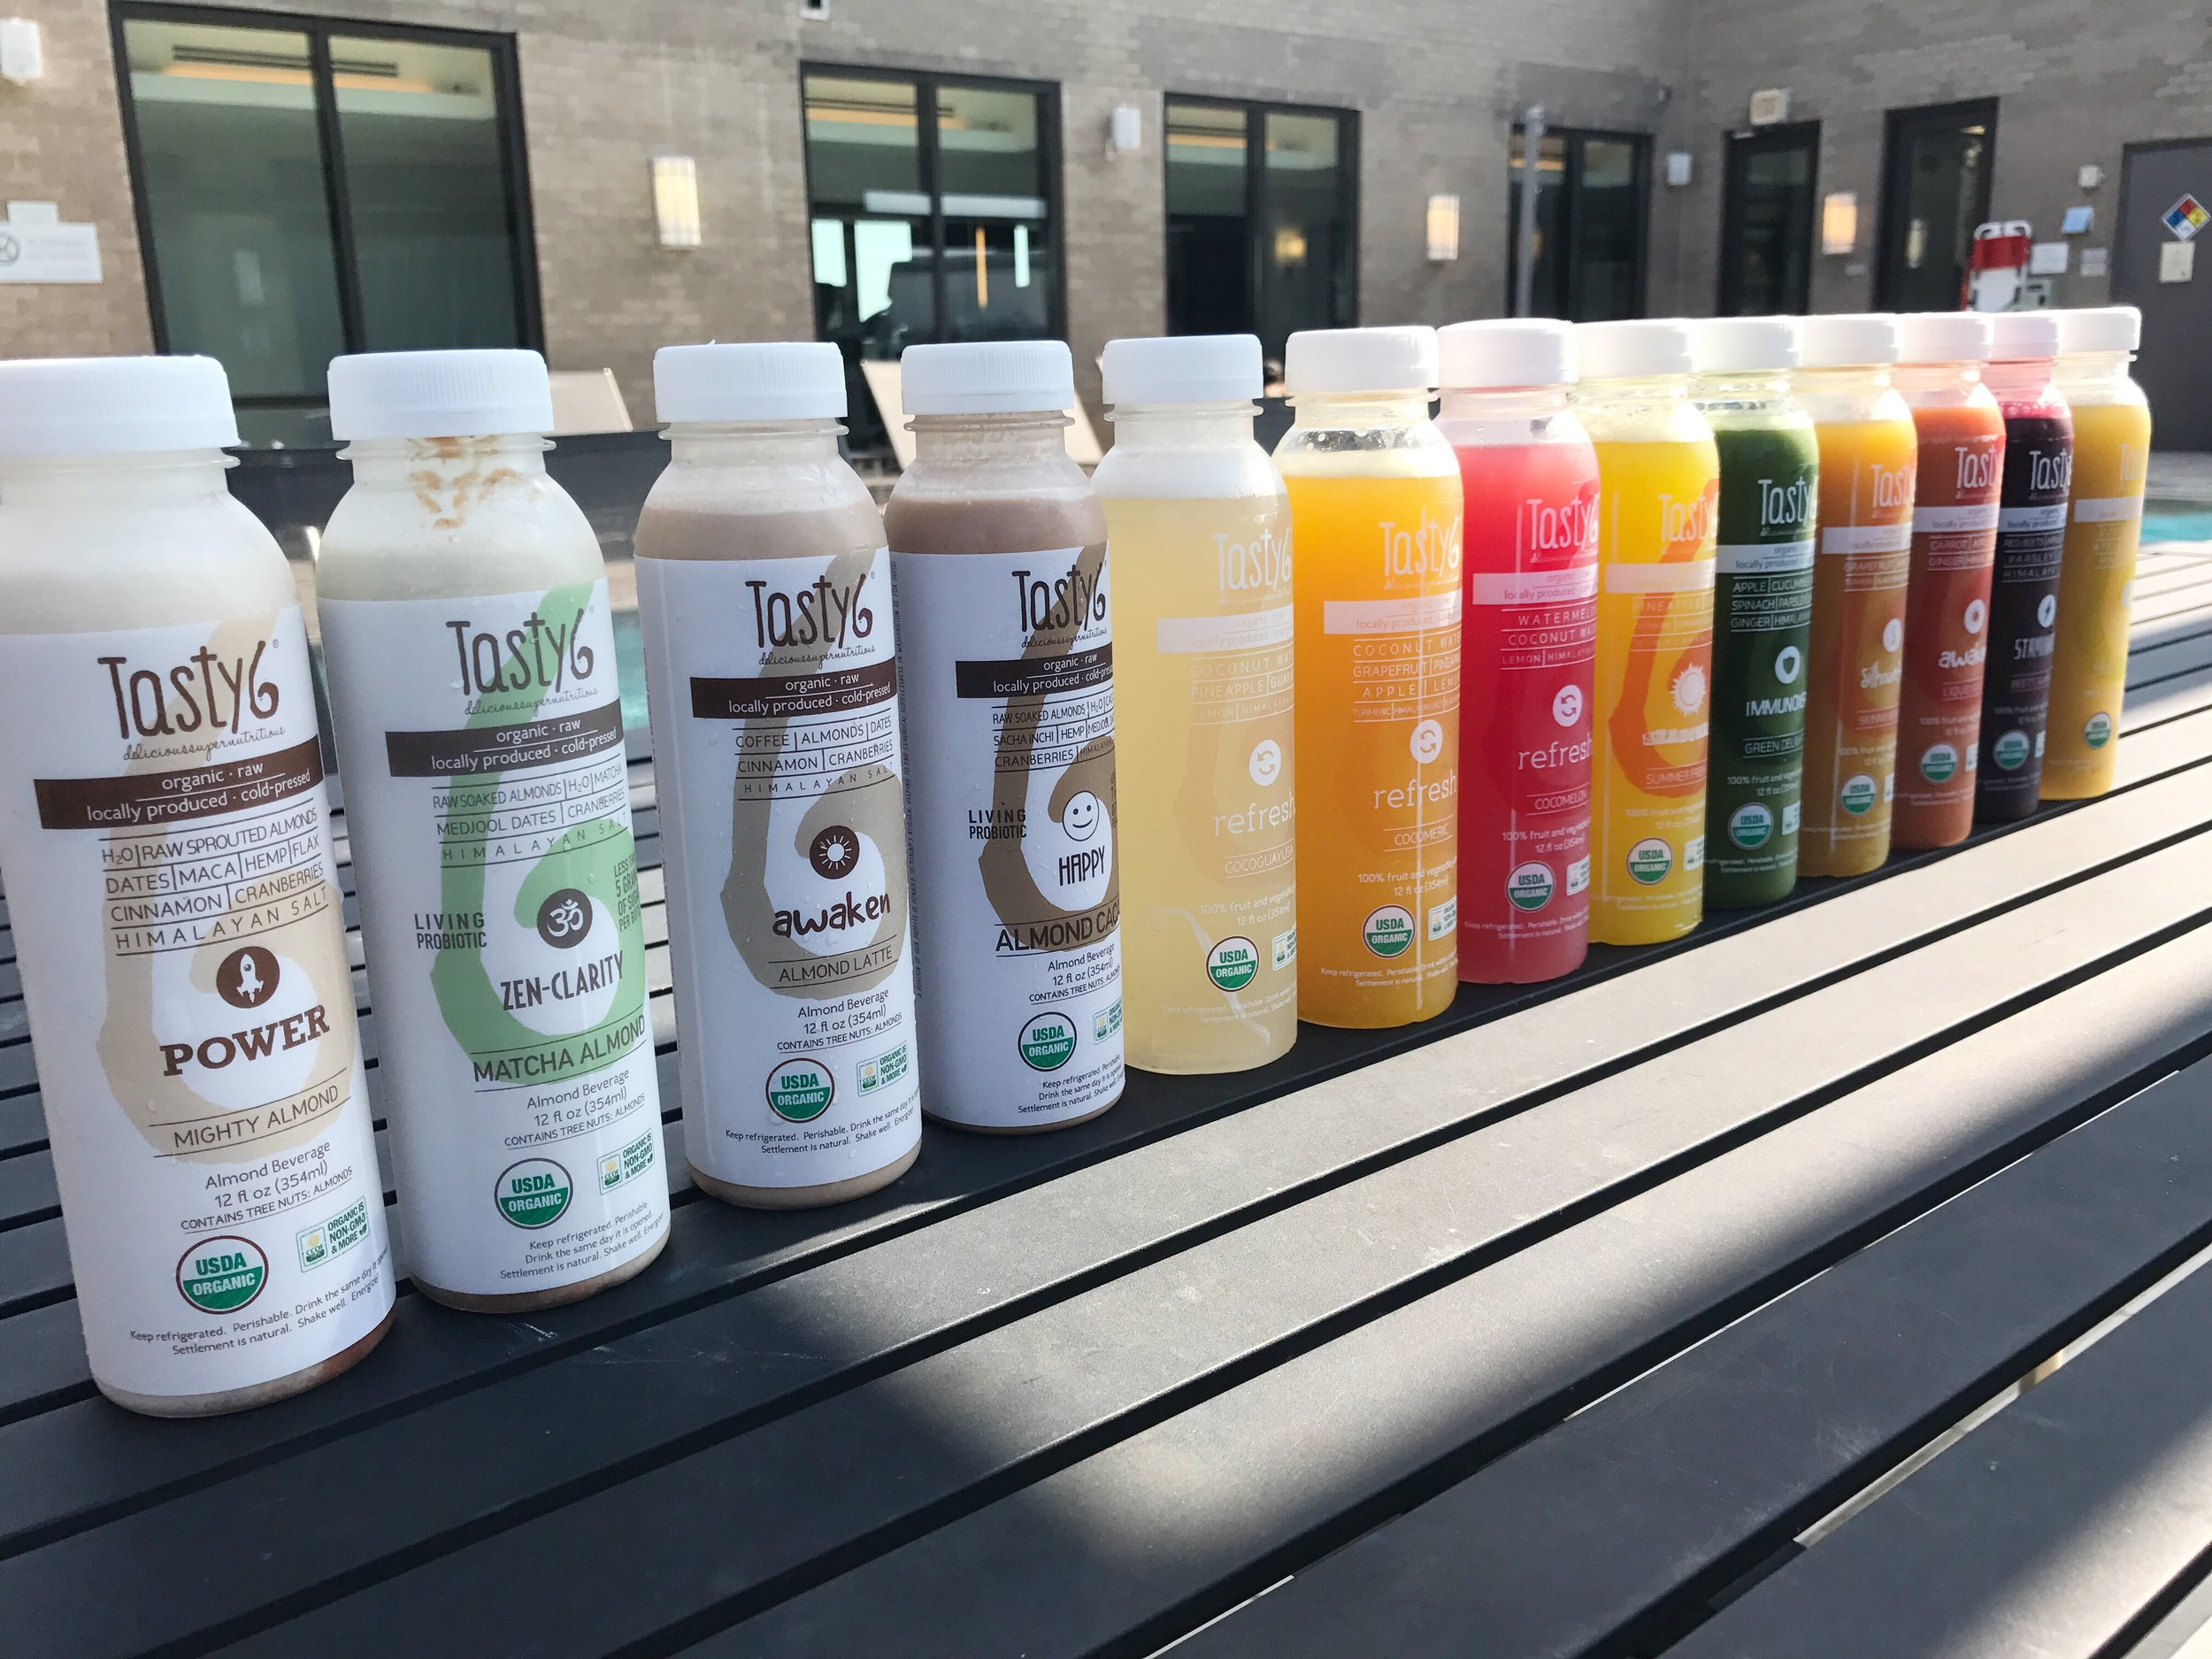 The full line-up of Tasty6's milks and juices.